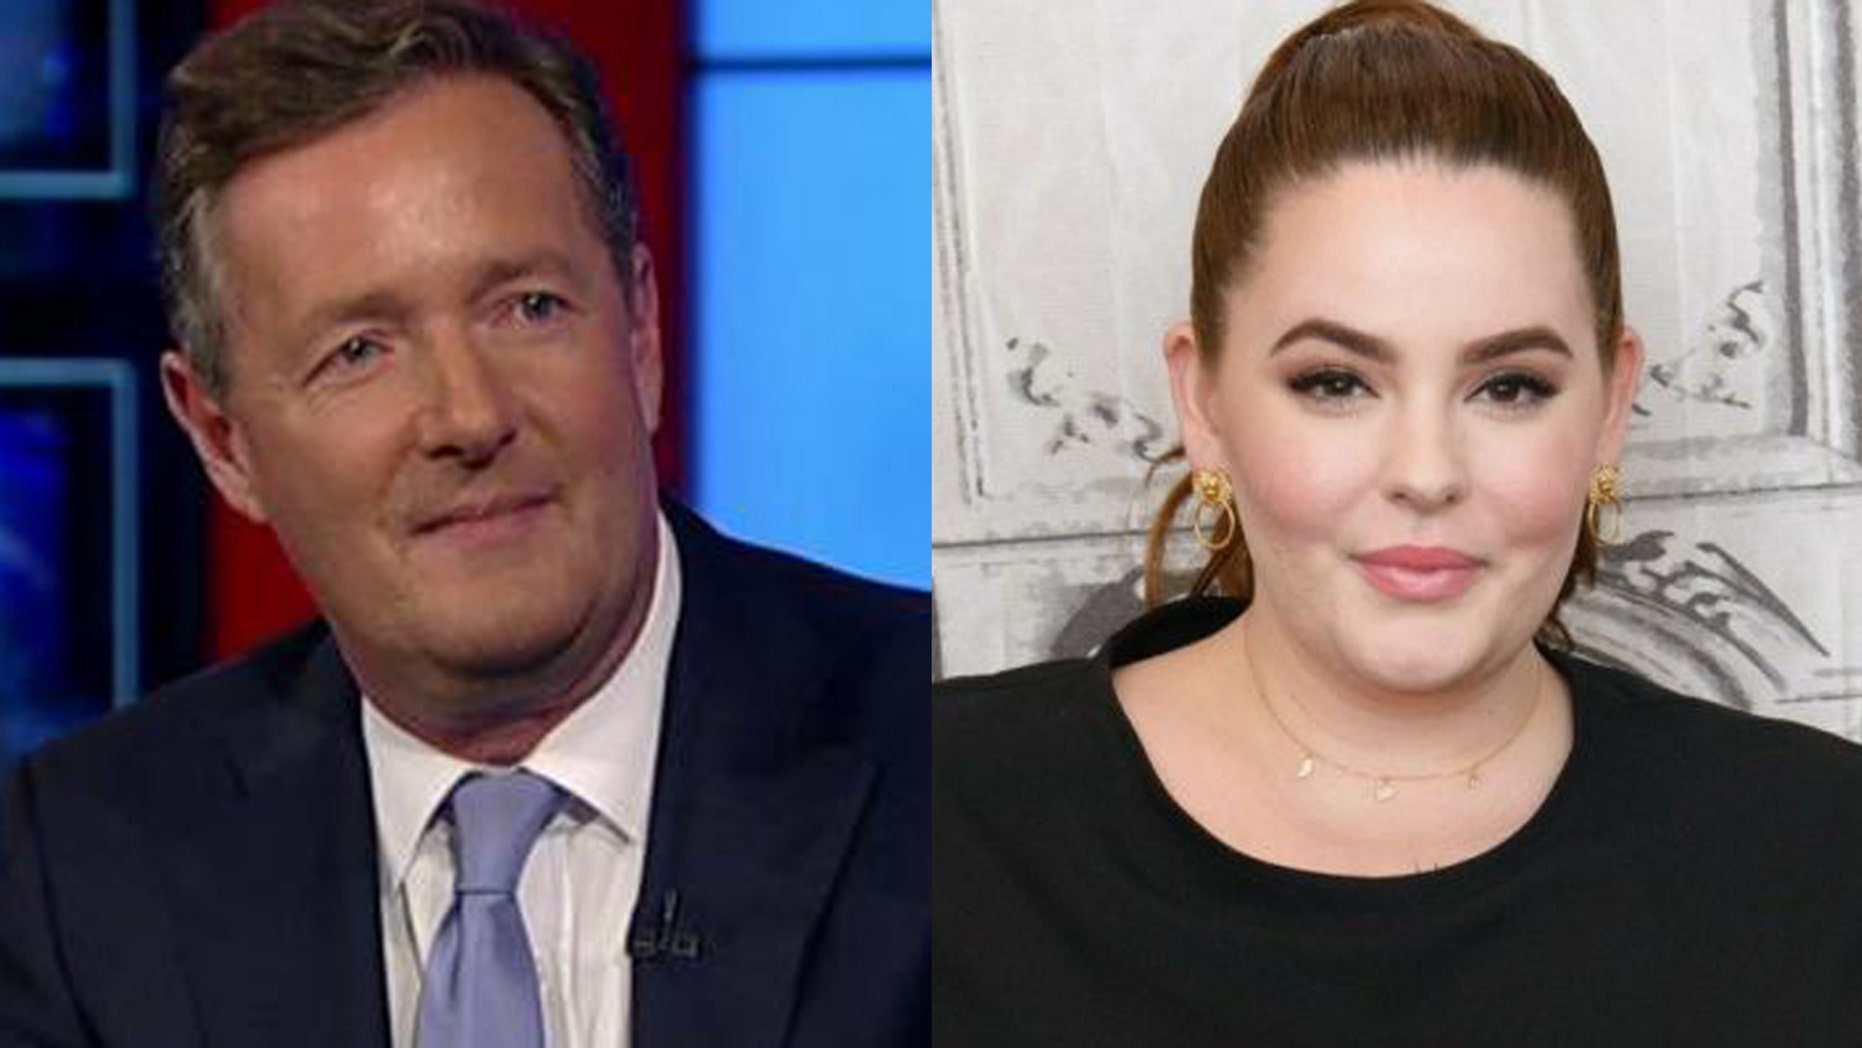 Tess Holliday responds to Piers Morgan's comments about her figure via Twitter.